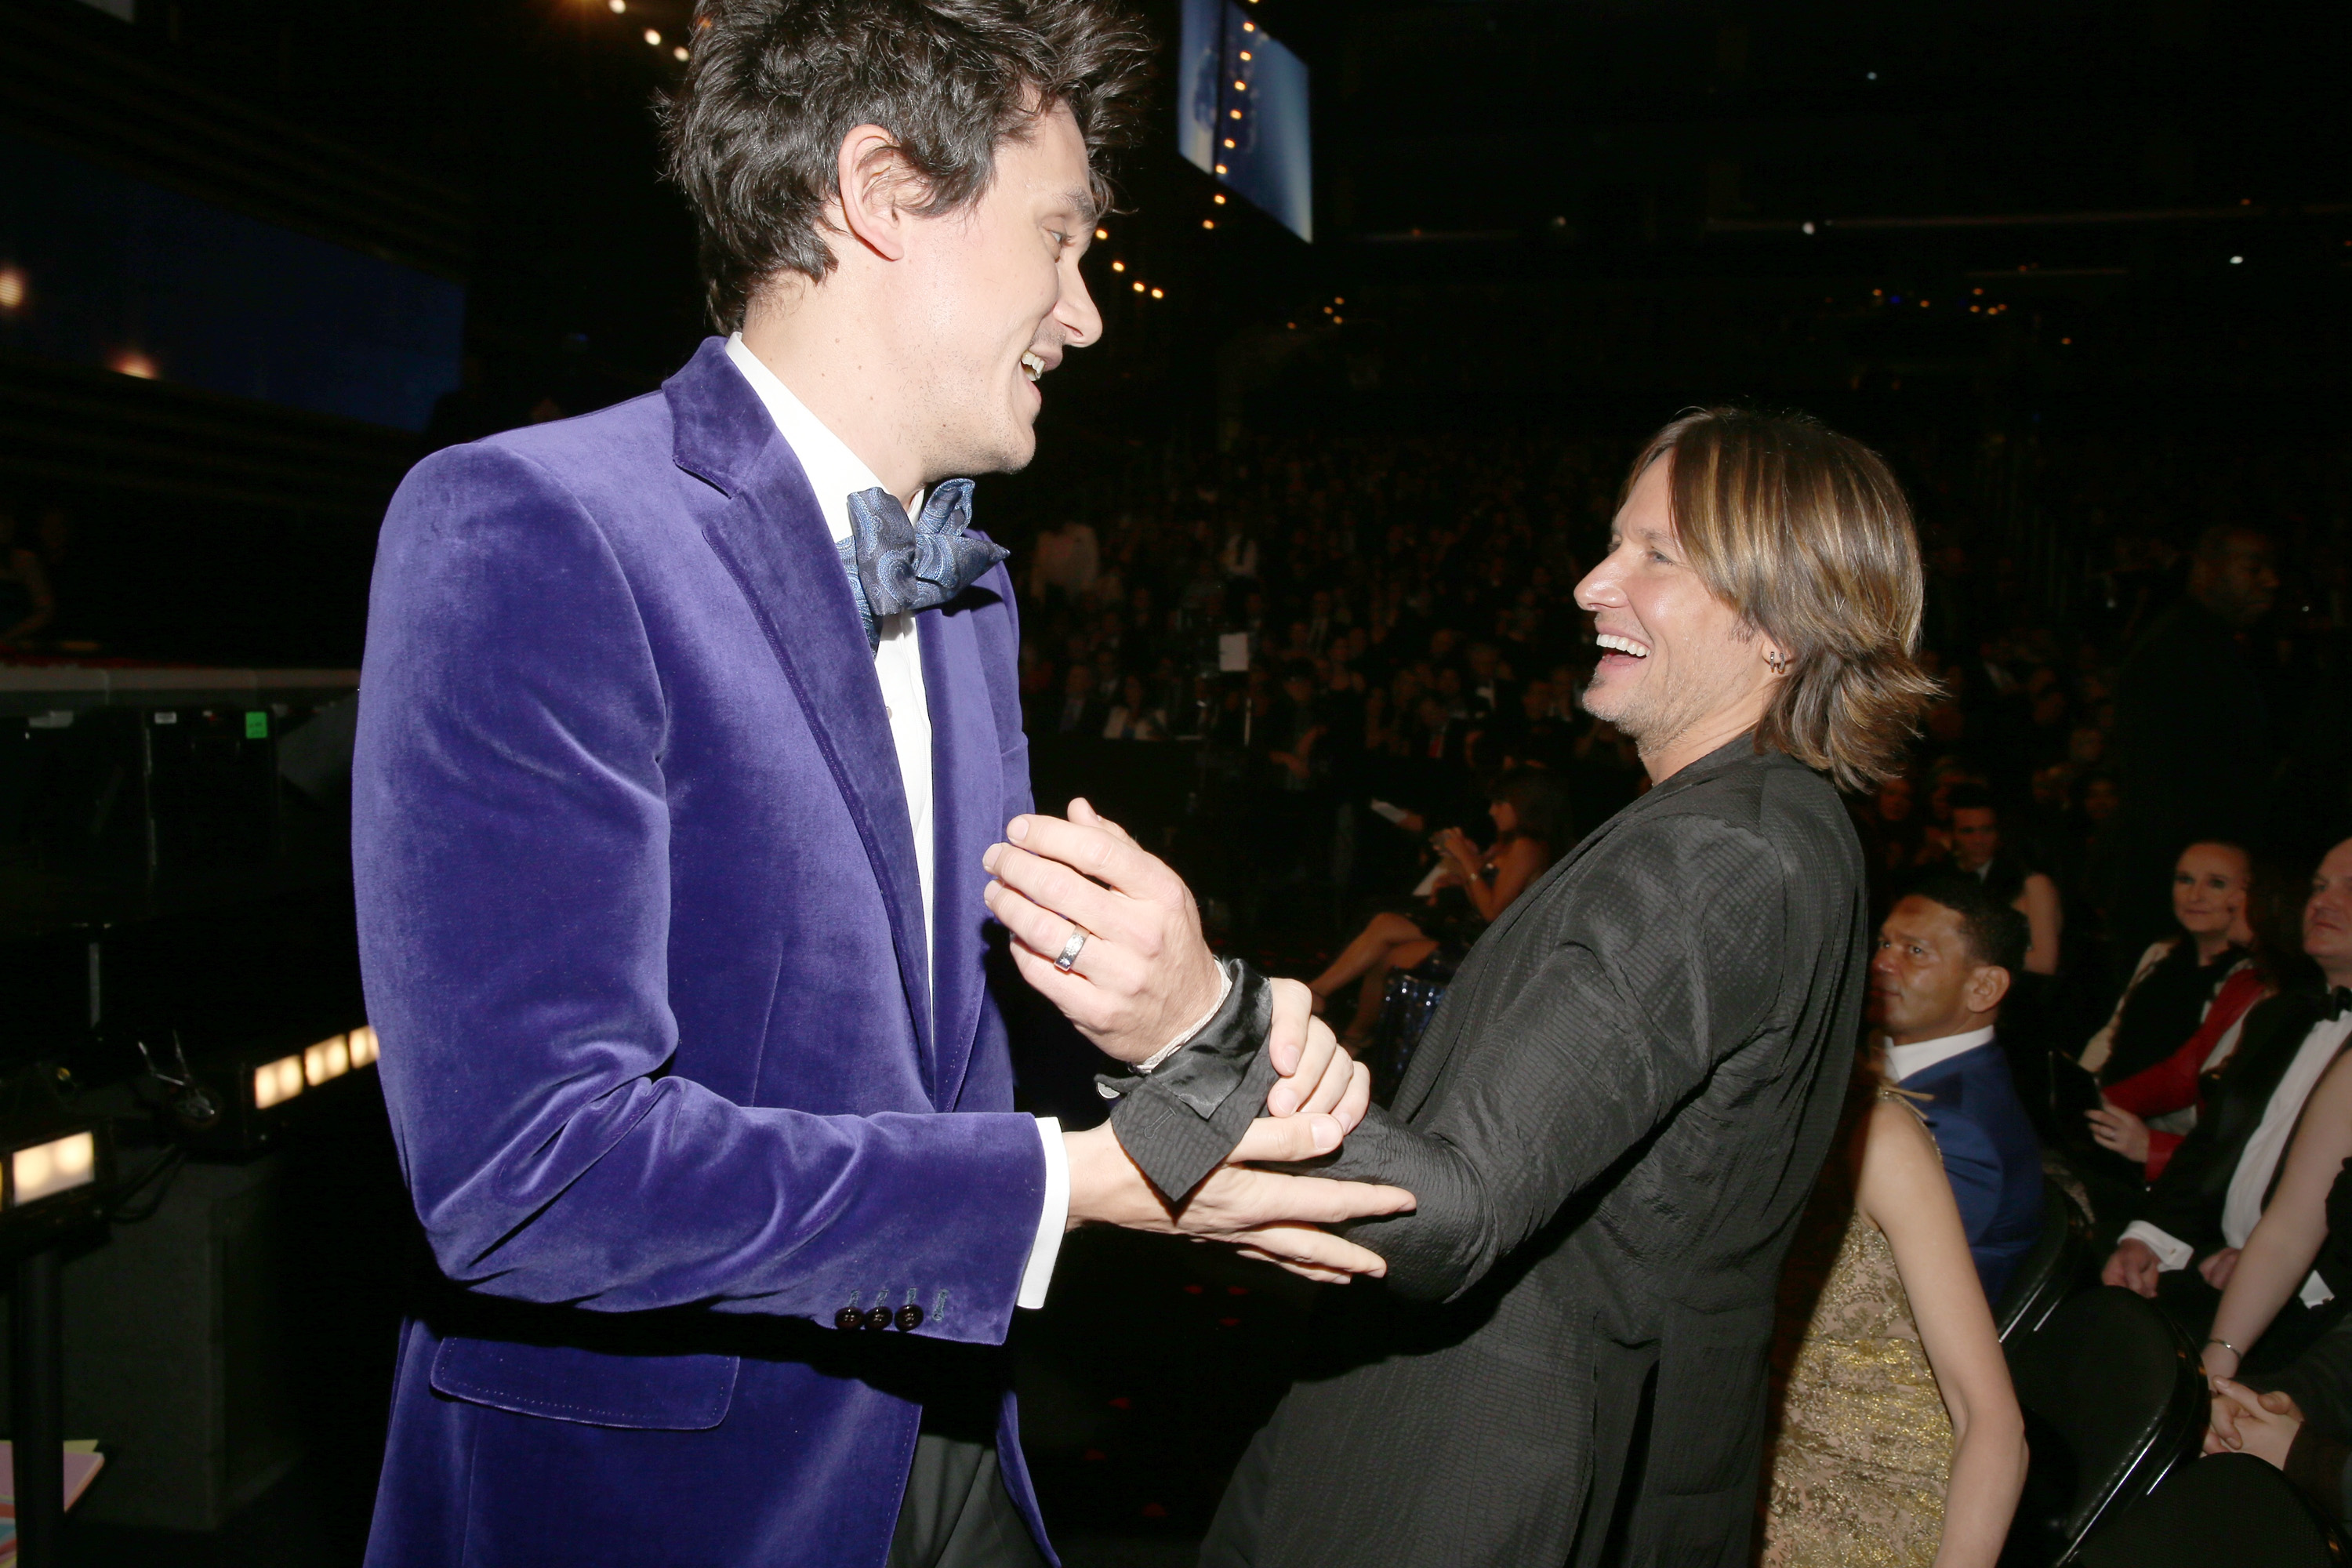 John Mayer joked around with Keith Urban.